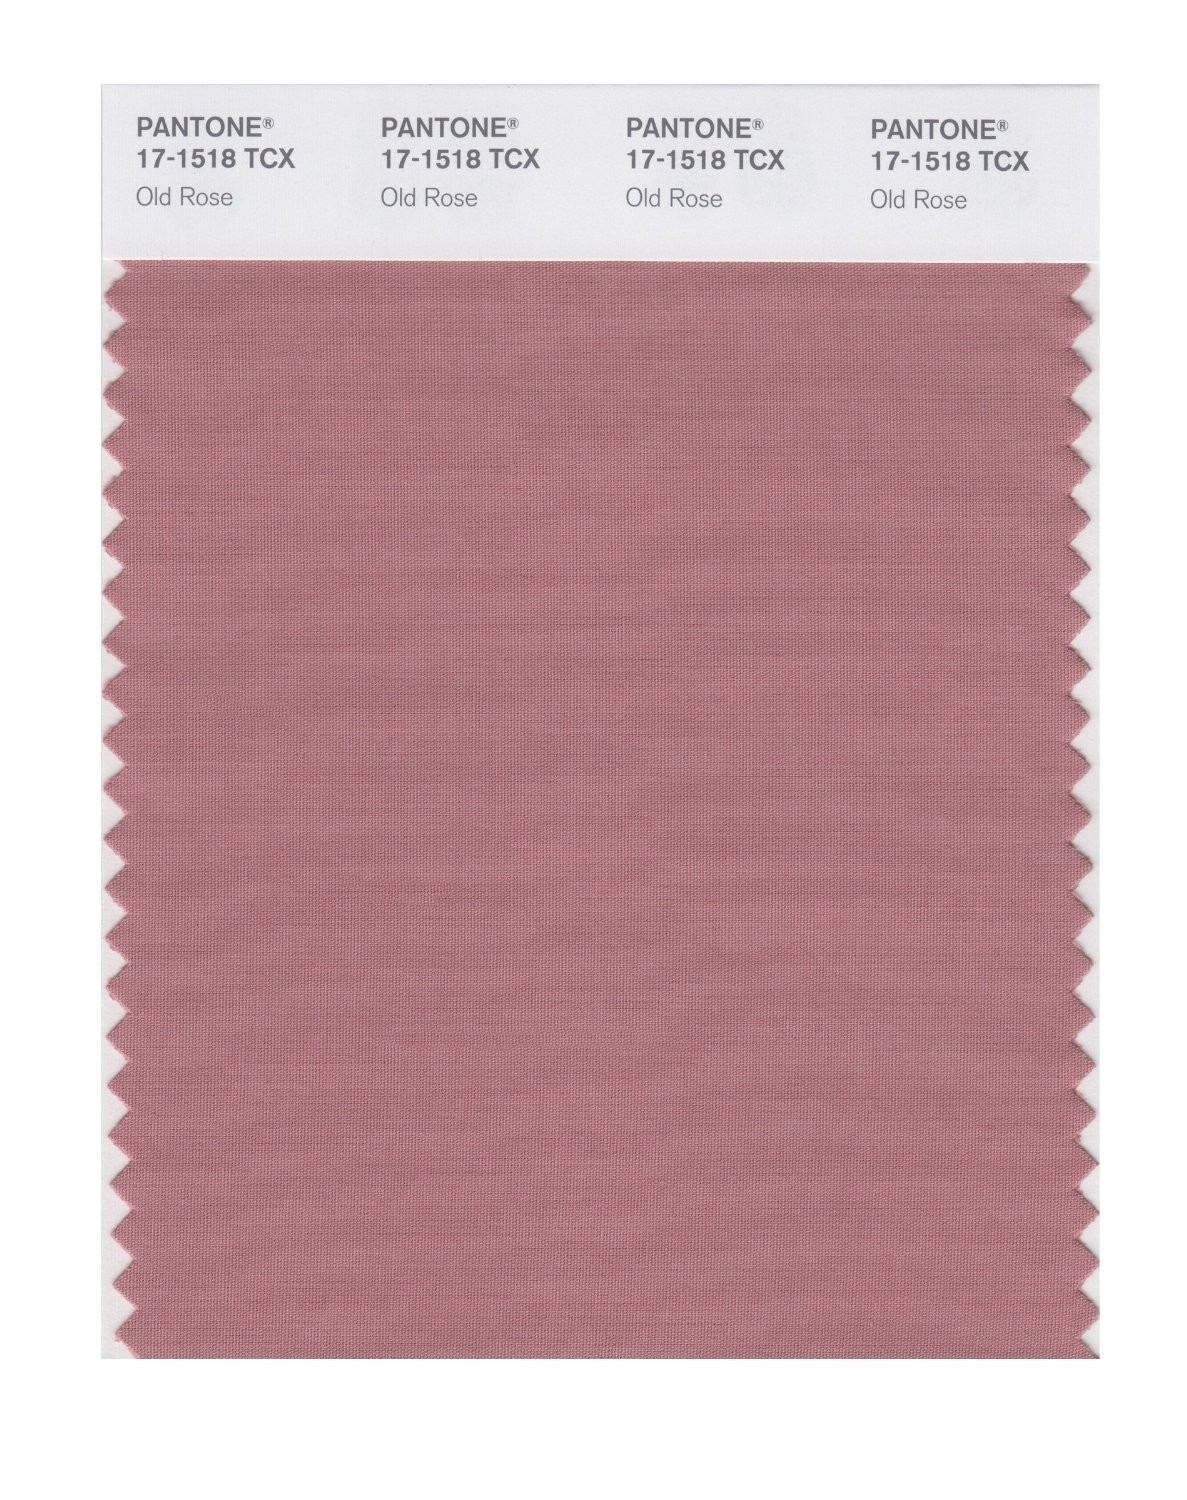 Pantone 17-1518 TCX Swatch Card Old Rose